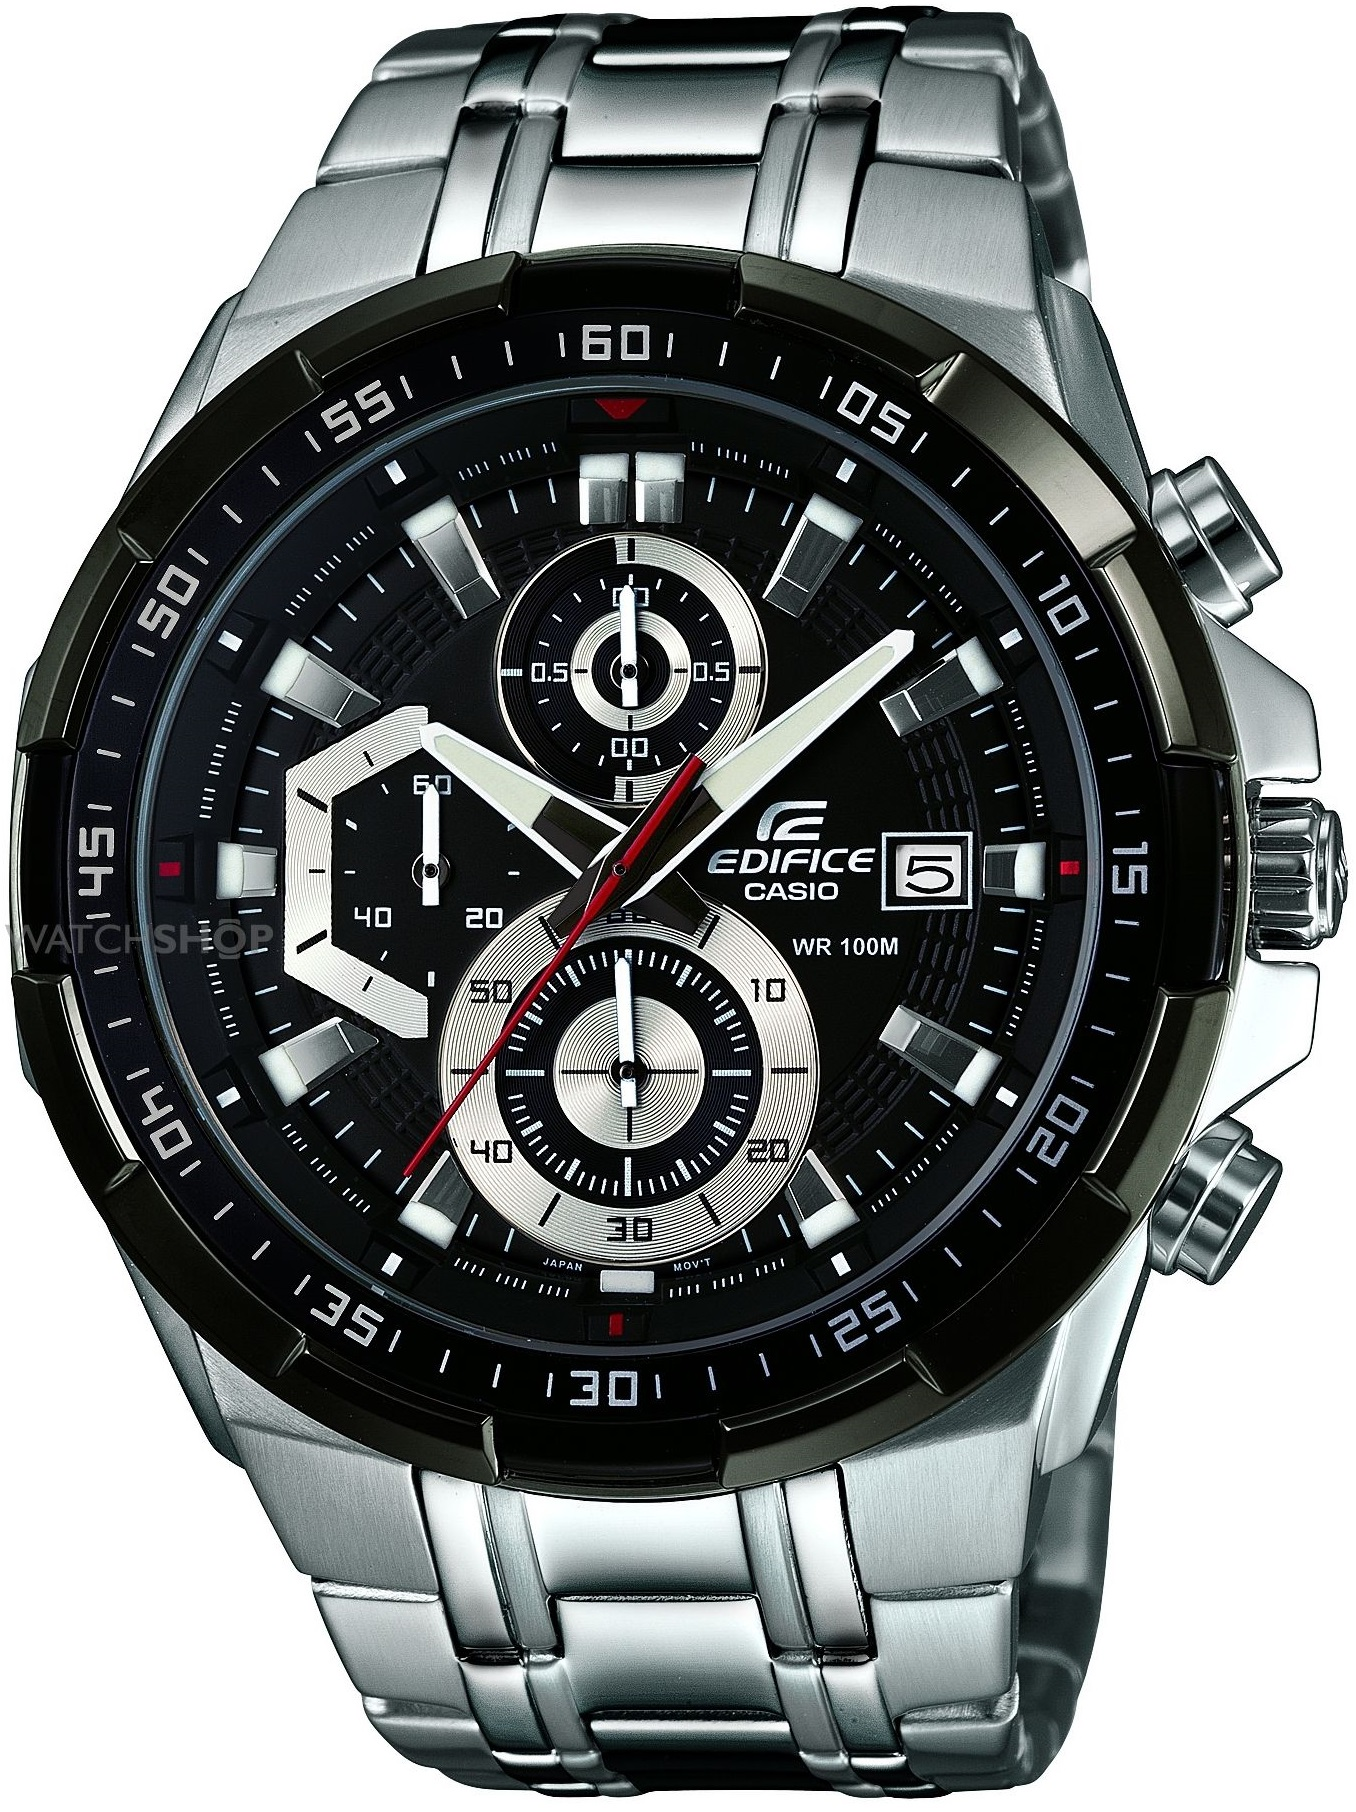 Мужские часы Casio Edifice EFR-539D-1AVUEF